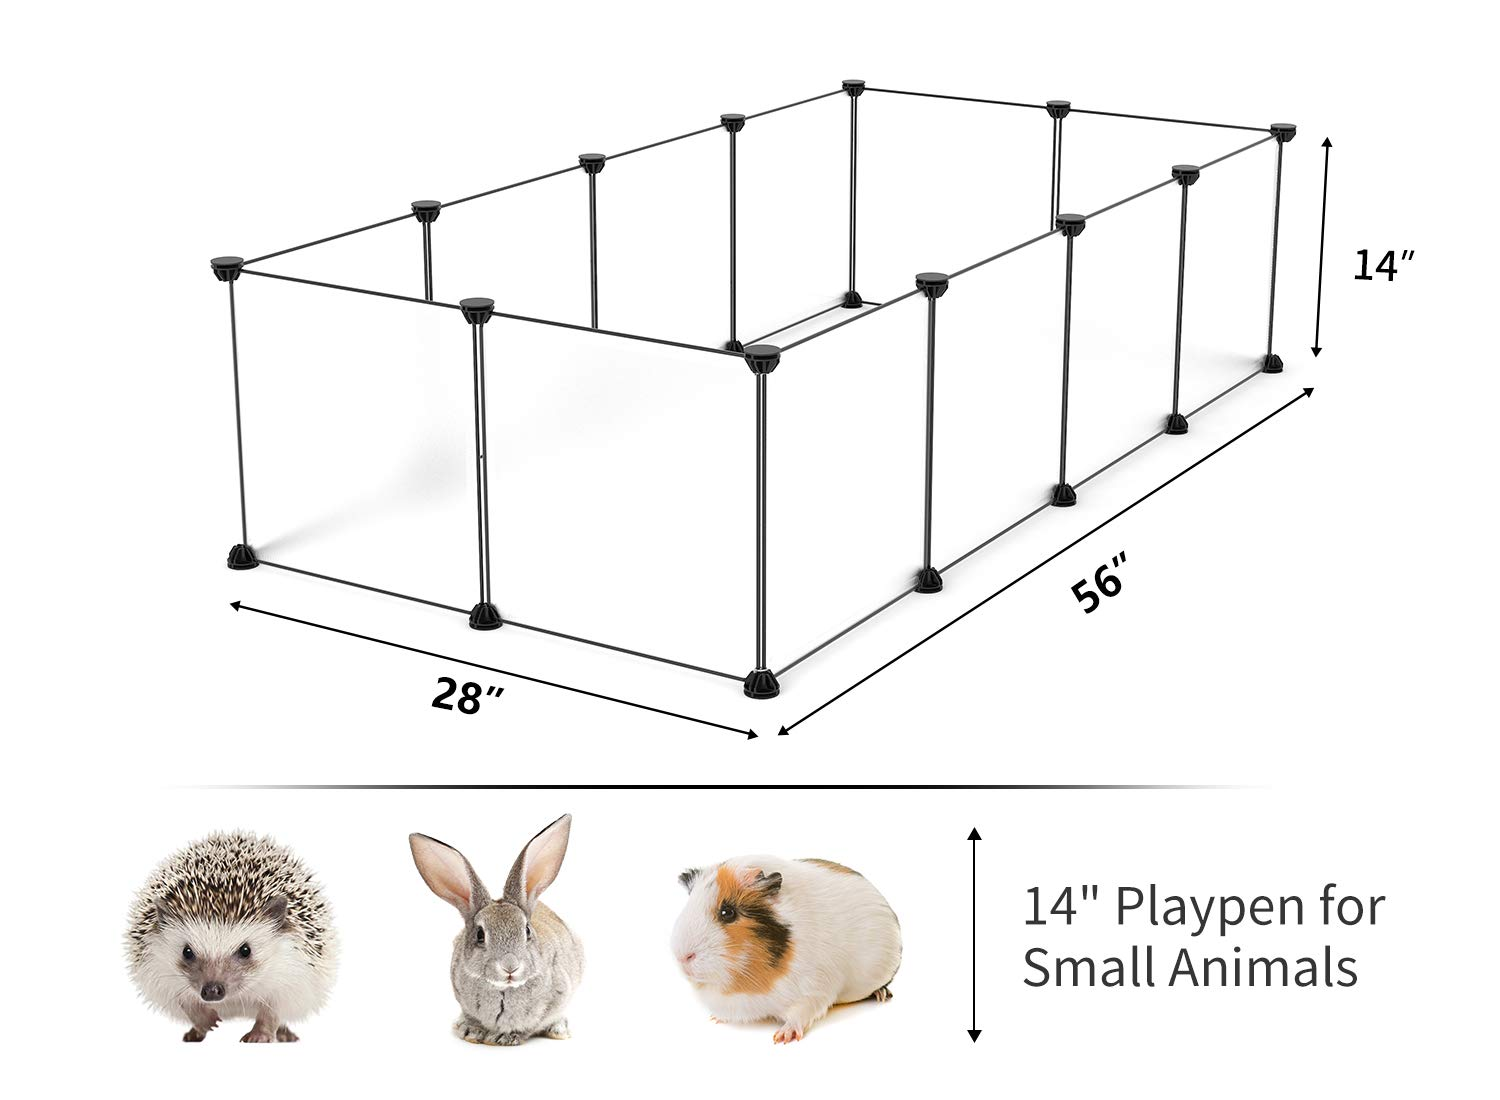 Small Animal Cage Indoor Portable Metal Wire Yard Fence for Small Animals 12 Panels Frosted White Black Tespo Pet Playpen Guinea Pigs Rabbits Kennel Crate Fence Tent